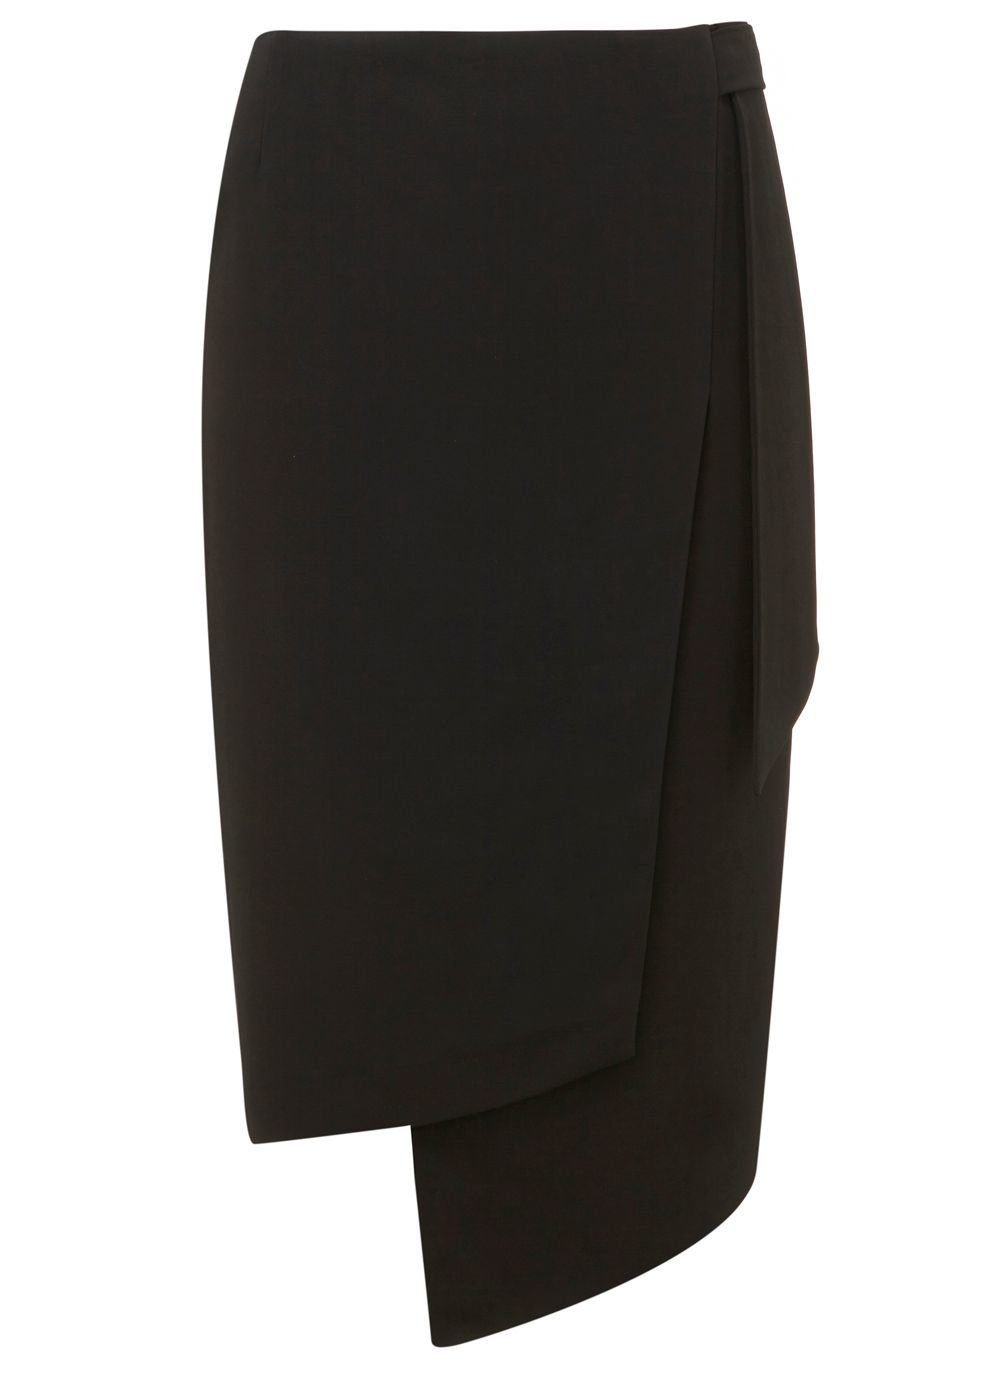 Black Formal Tie Skirt, Black - length: below the knee; pattern: plain; style: wrap/faux wrap; fit: tailored/fitted; waist: mid/regular rise; predominant colour: black; occasions: work; fibres: viscose/rayon - stretch; texture group: crepes; pattern type: fabric; wardrobe: basic; season: a/w 2016